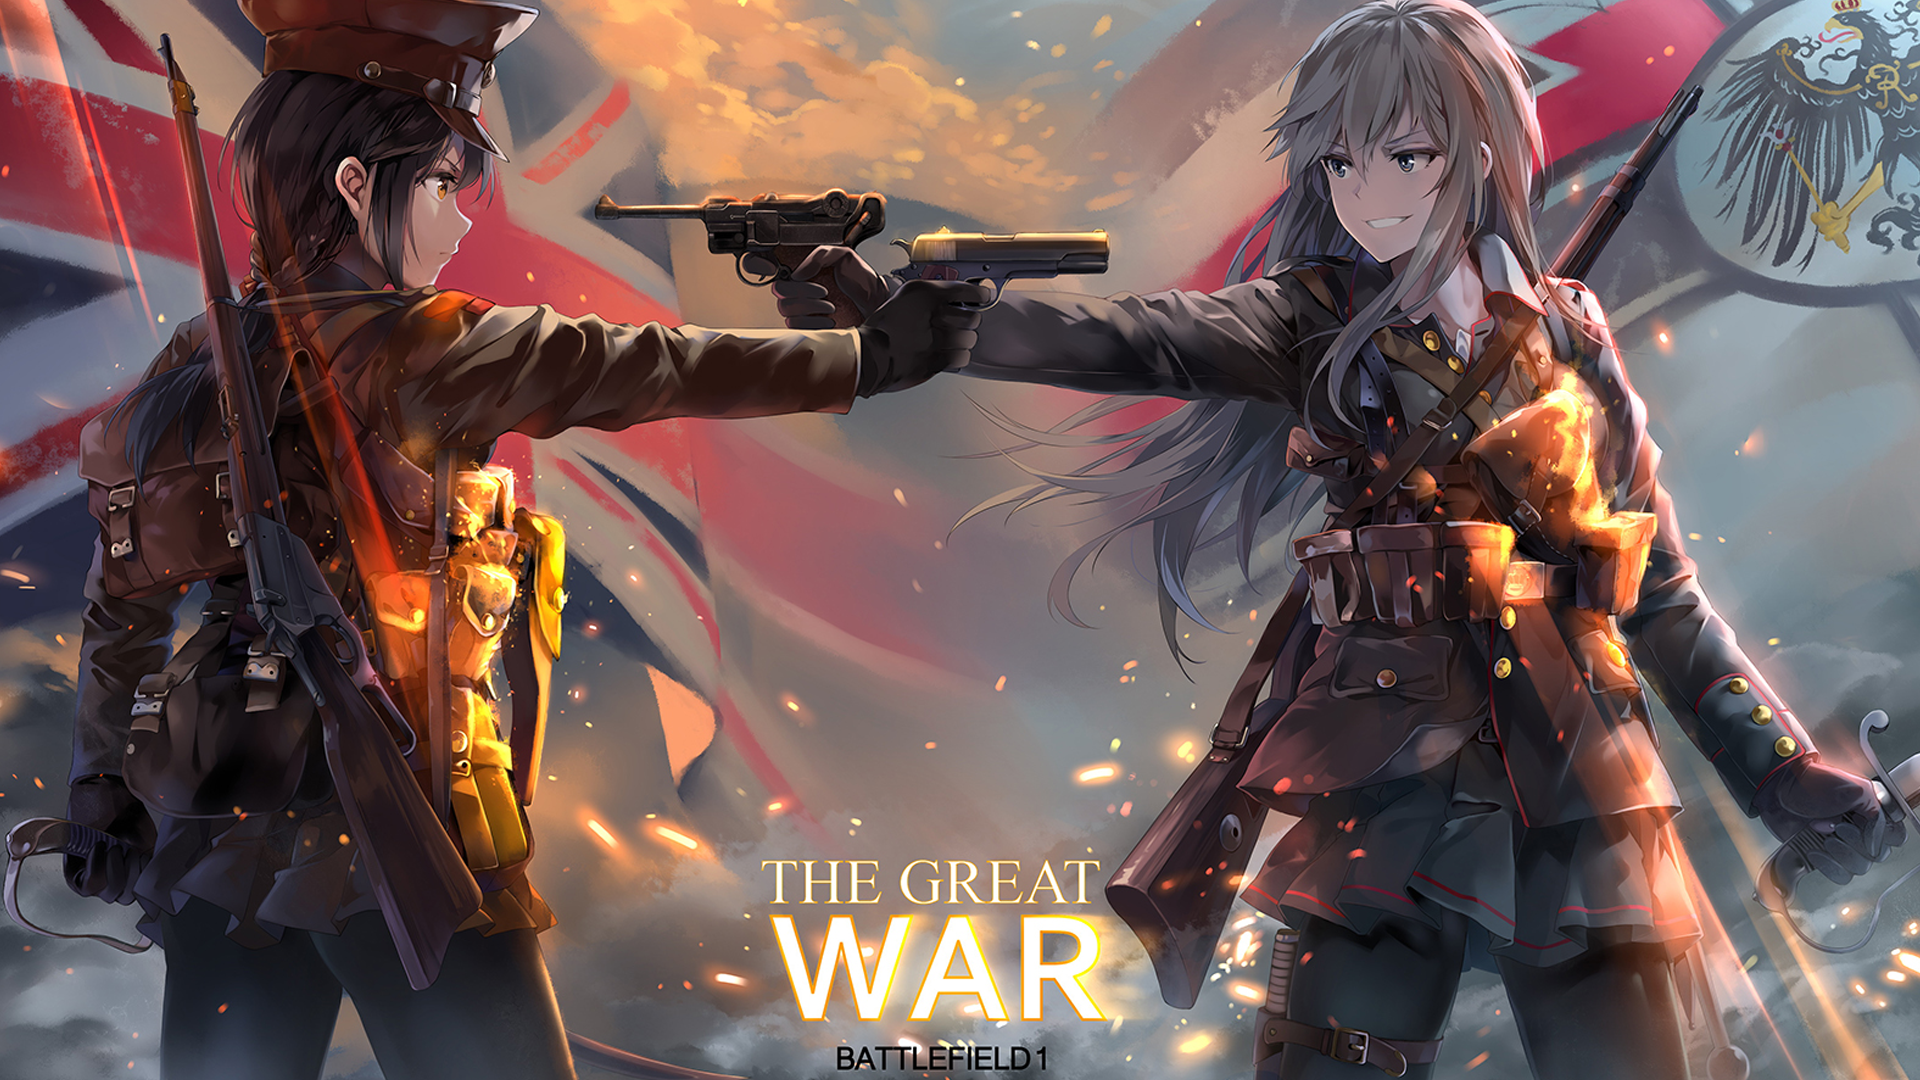 The Great War - Battlefield 1 Battlefield, The Great War, арт